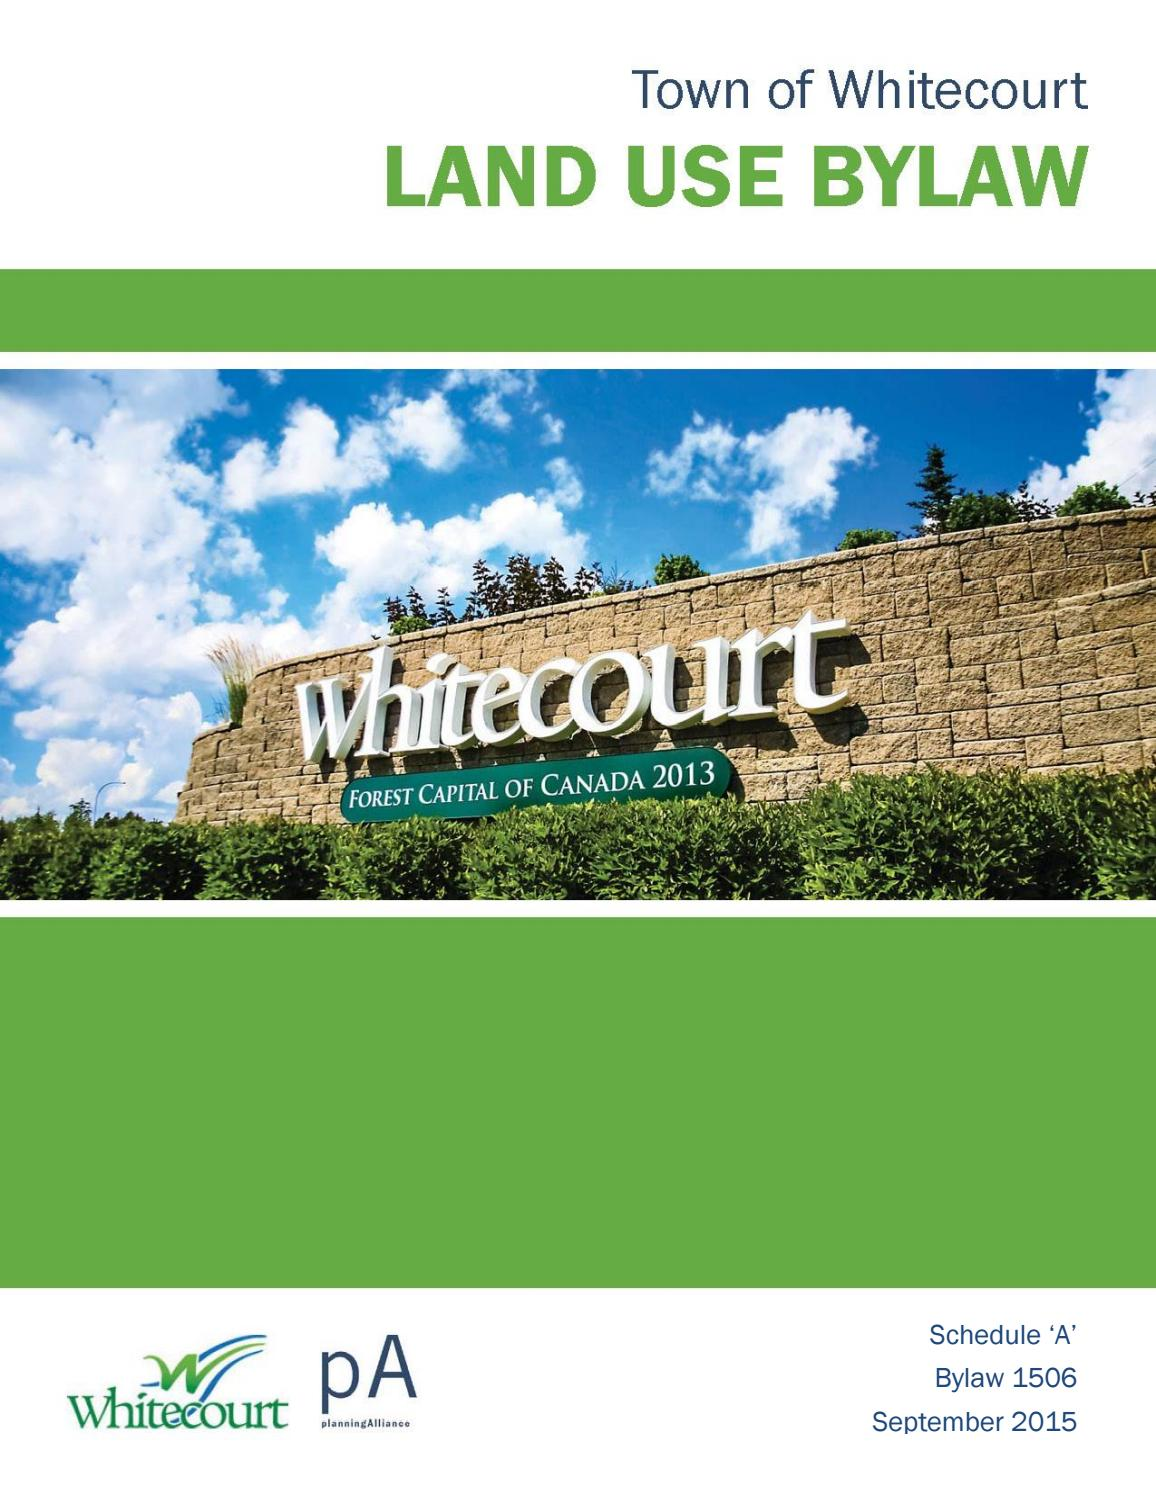 Whitecourt Land Use Bylaw September 2015 By Town Of Whitecourt - Whitecourt Plumbers